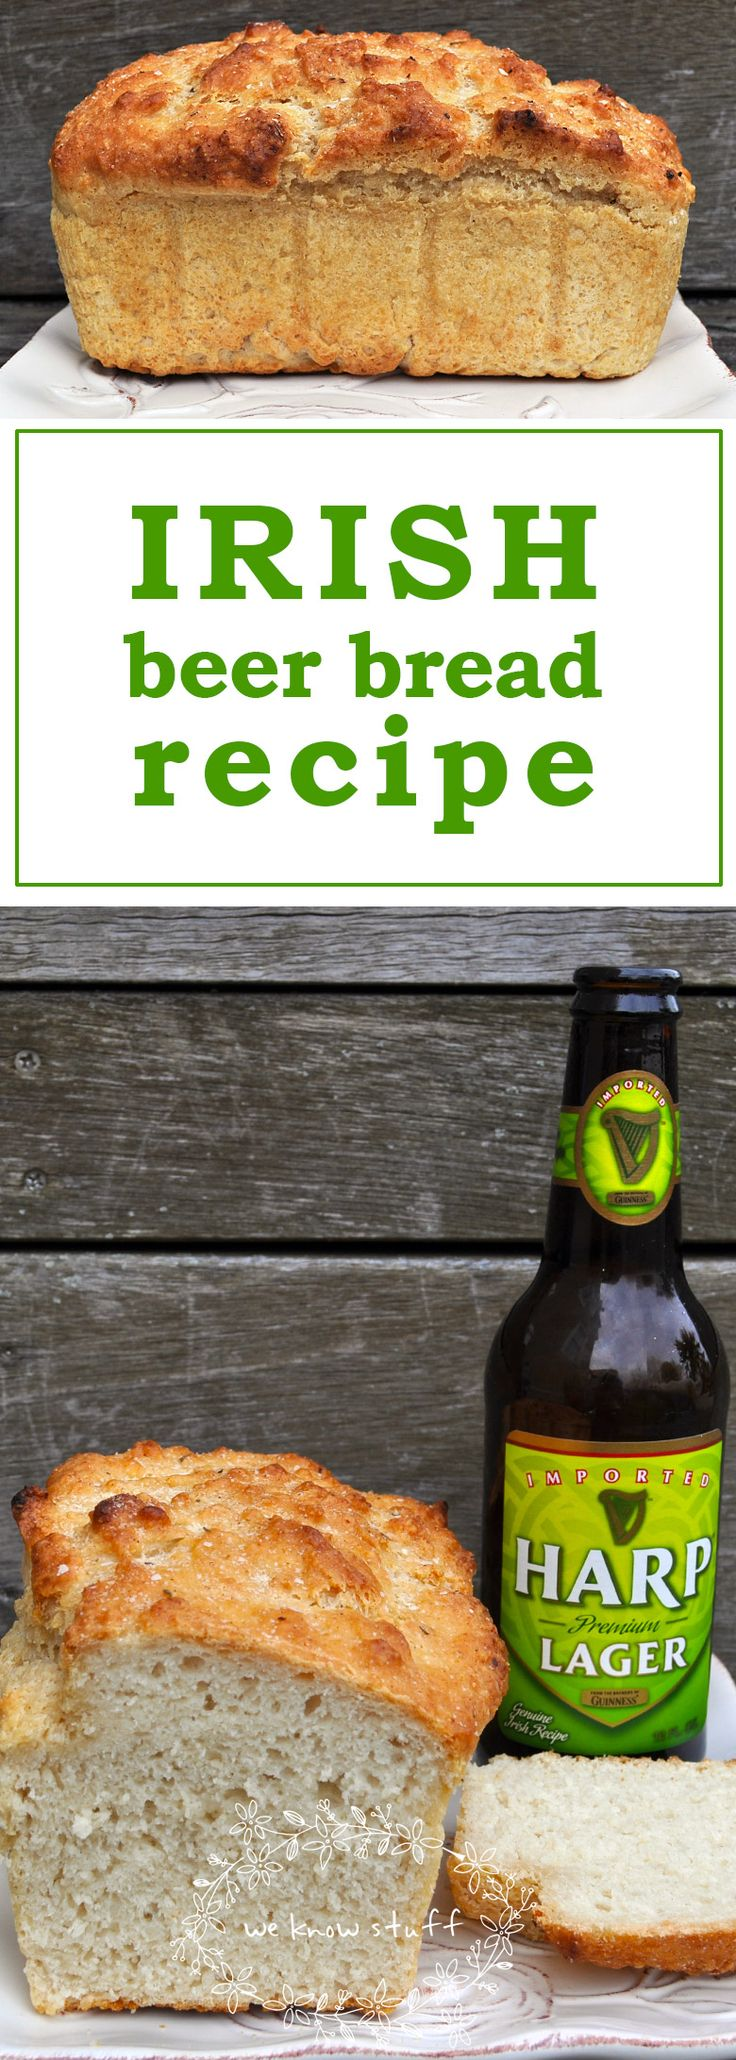 Irish Beer Bread not only tastes great, but it's a really fun science experiment for the kids! They loved watching the beer explode in the batter.